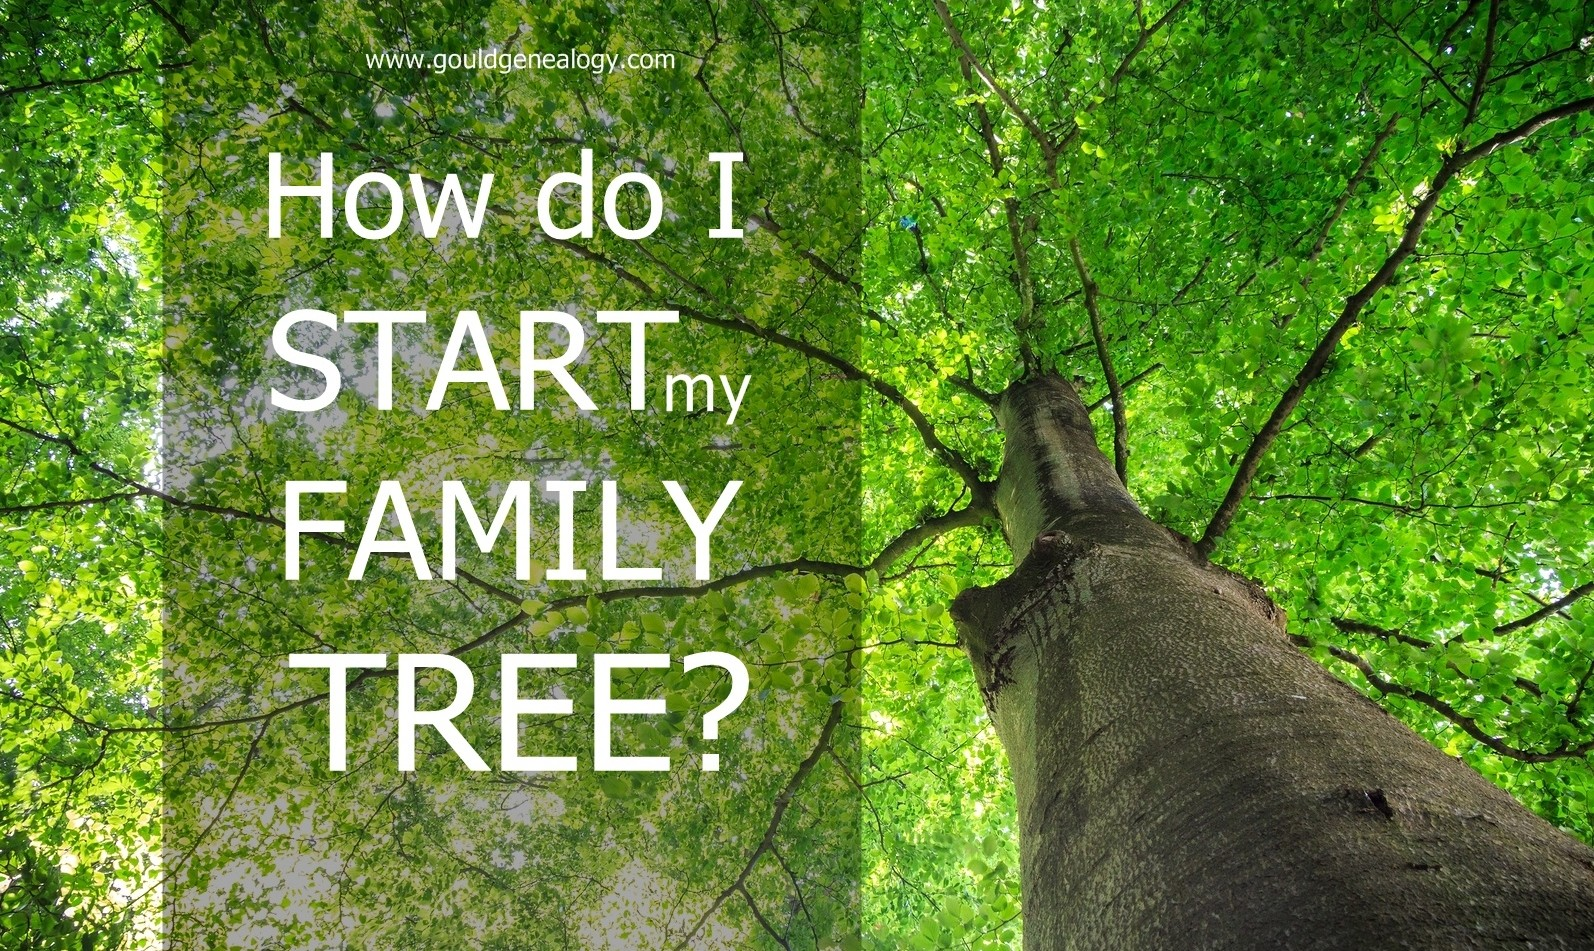 How Do I Start My Family Tree?